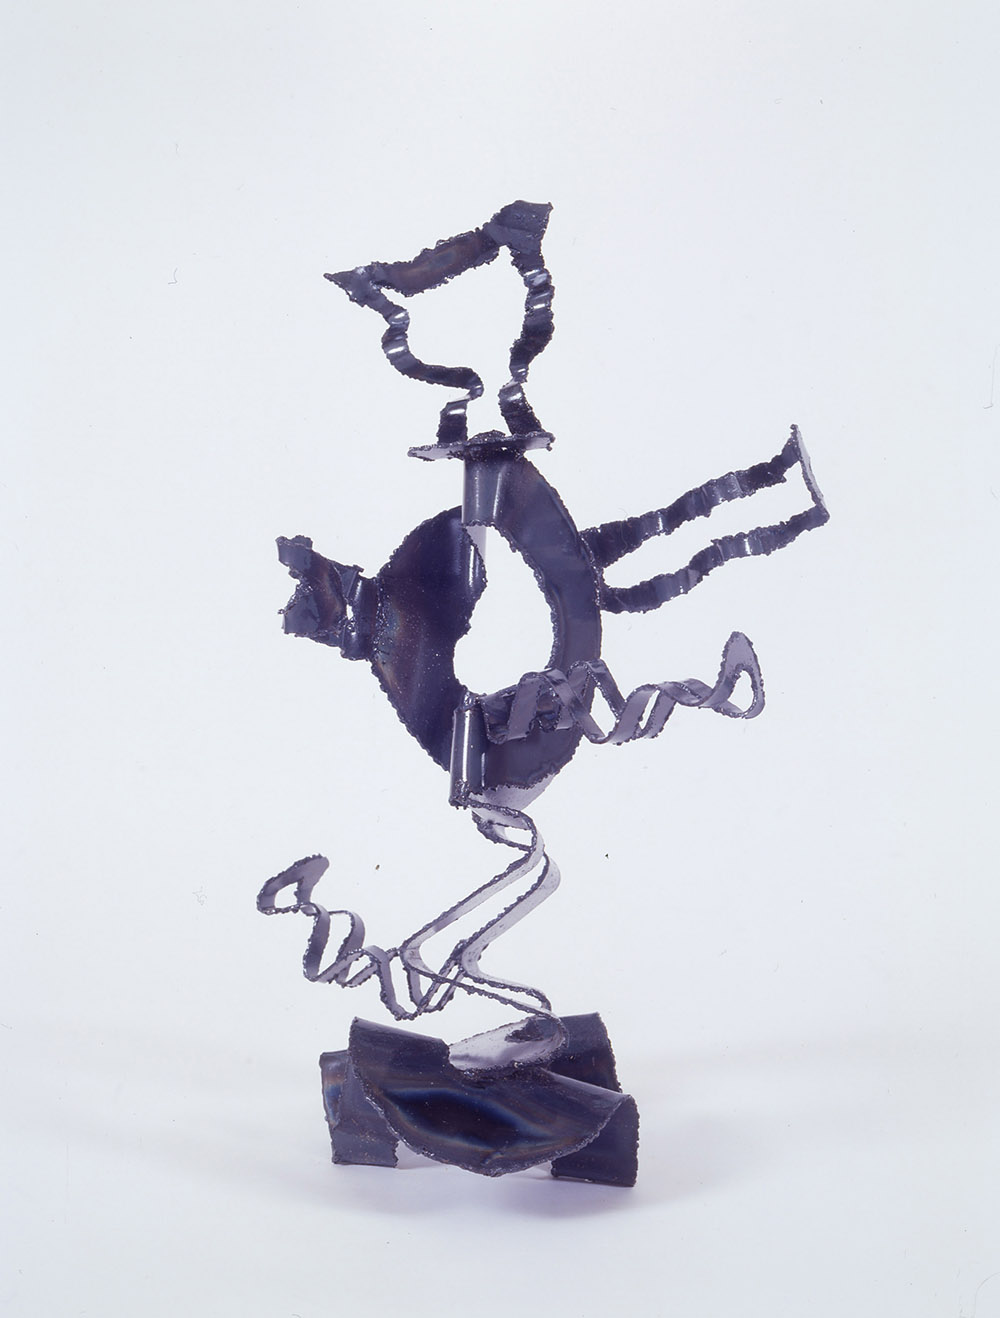 15.a-Ono-Dancing-Cat-1997.-Steel-81.3-x-66-x-38.1-cm-x.jpg